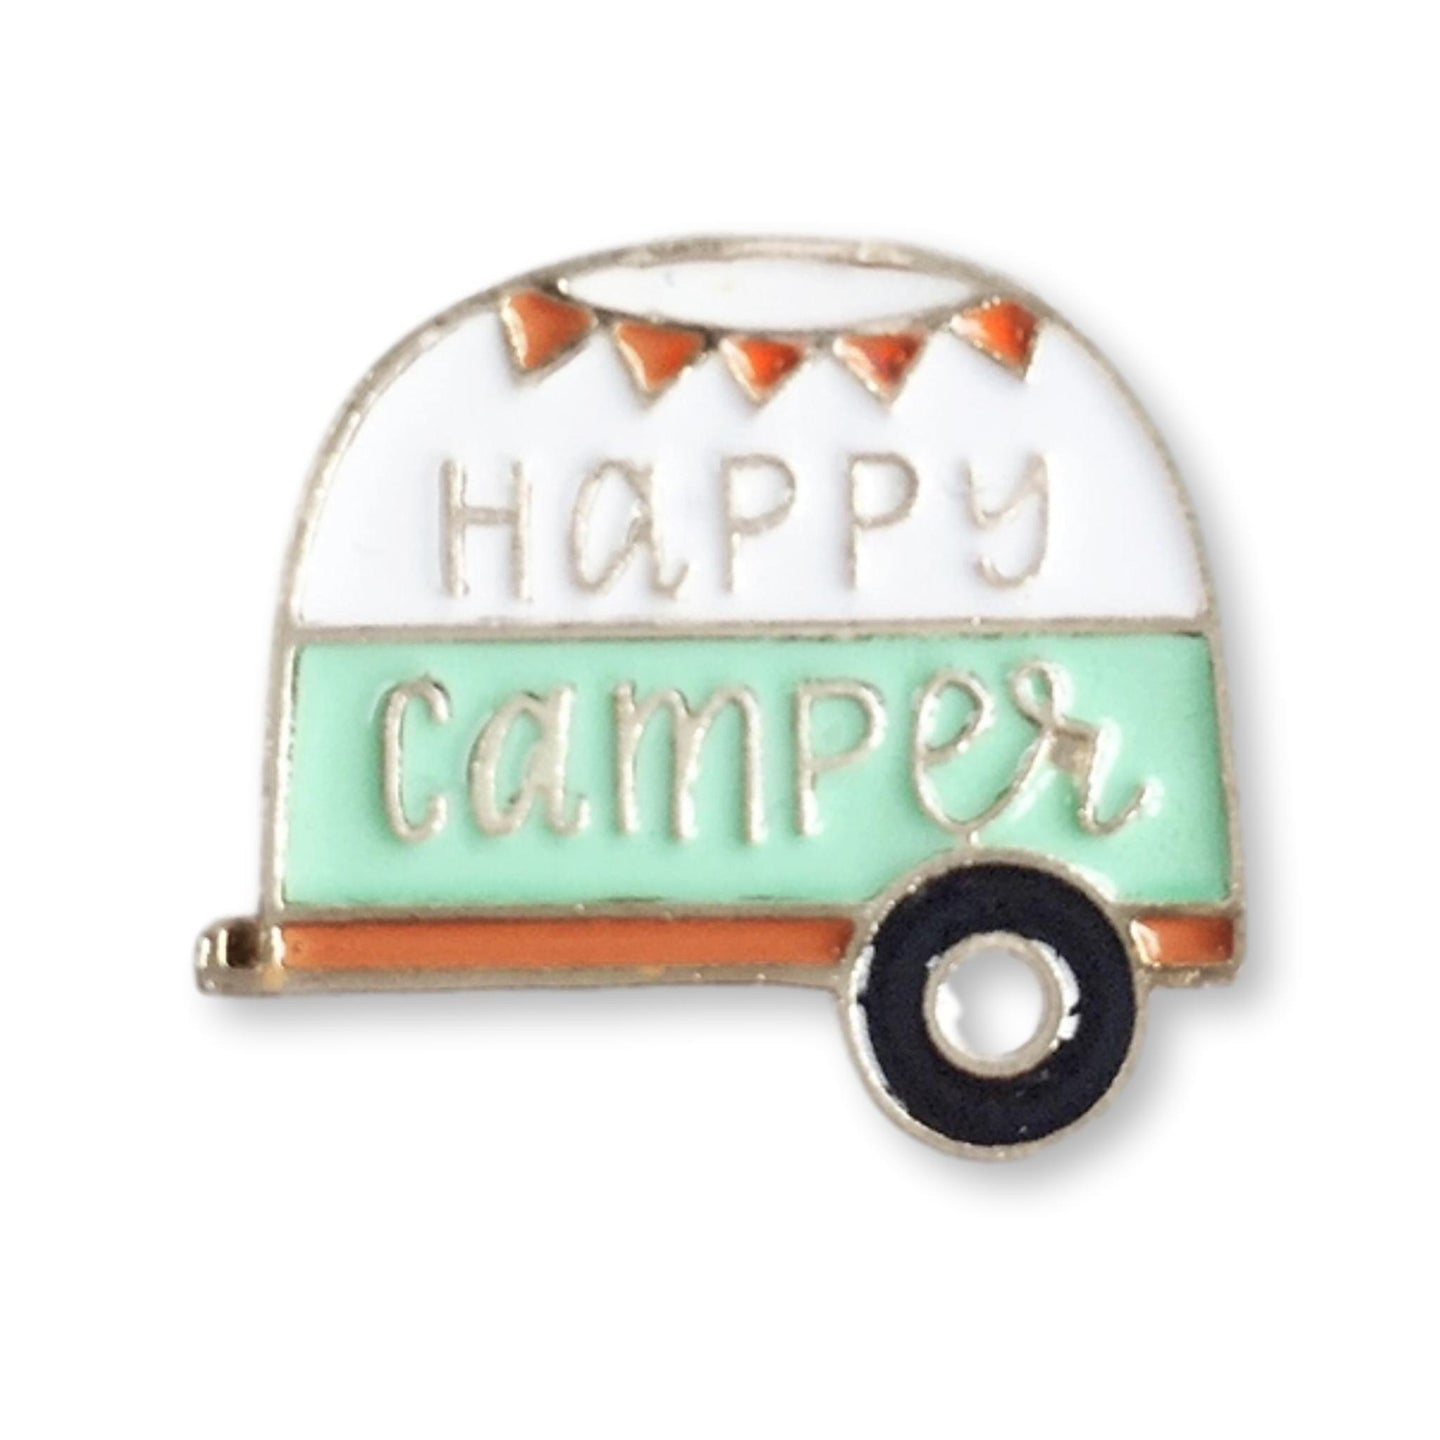 Happy Camper Enamel Pin